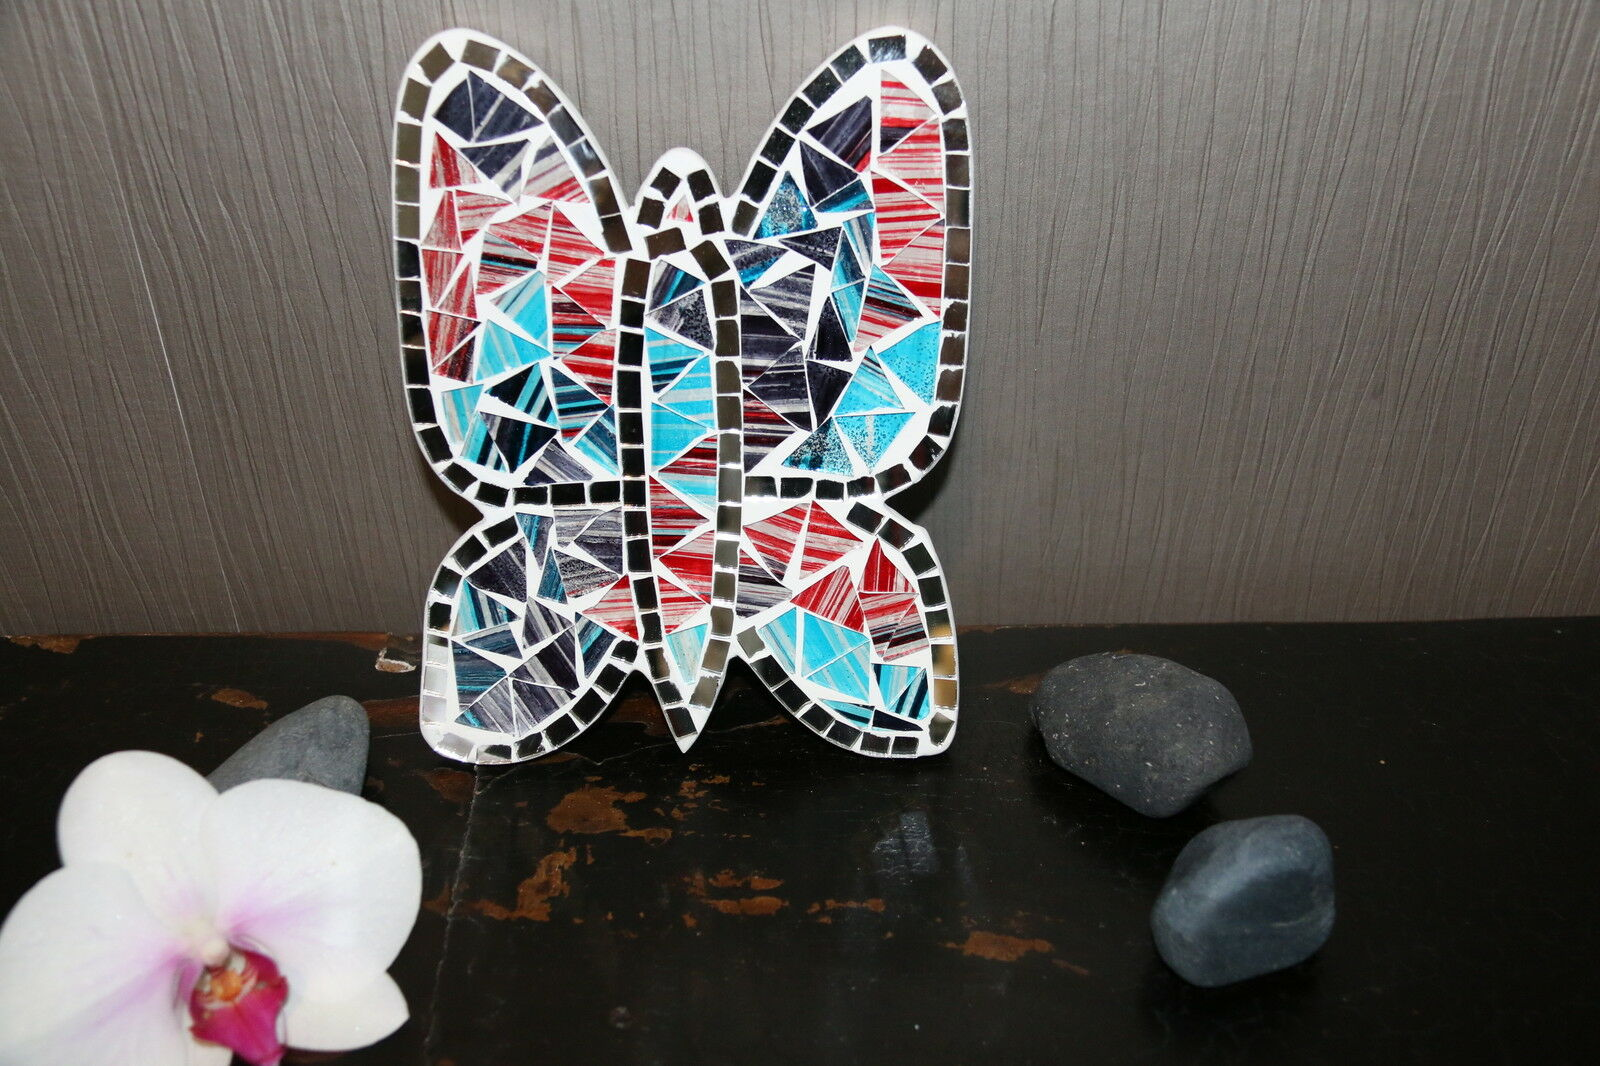 Brand New Balinese Hand Crafted Mosaic Butterflyfly Balinese Wall Art